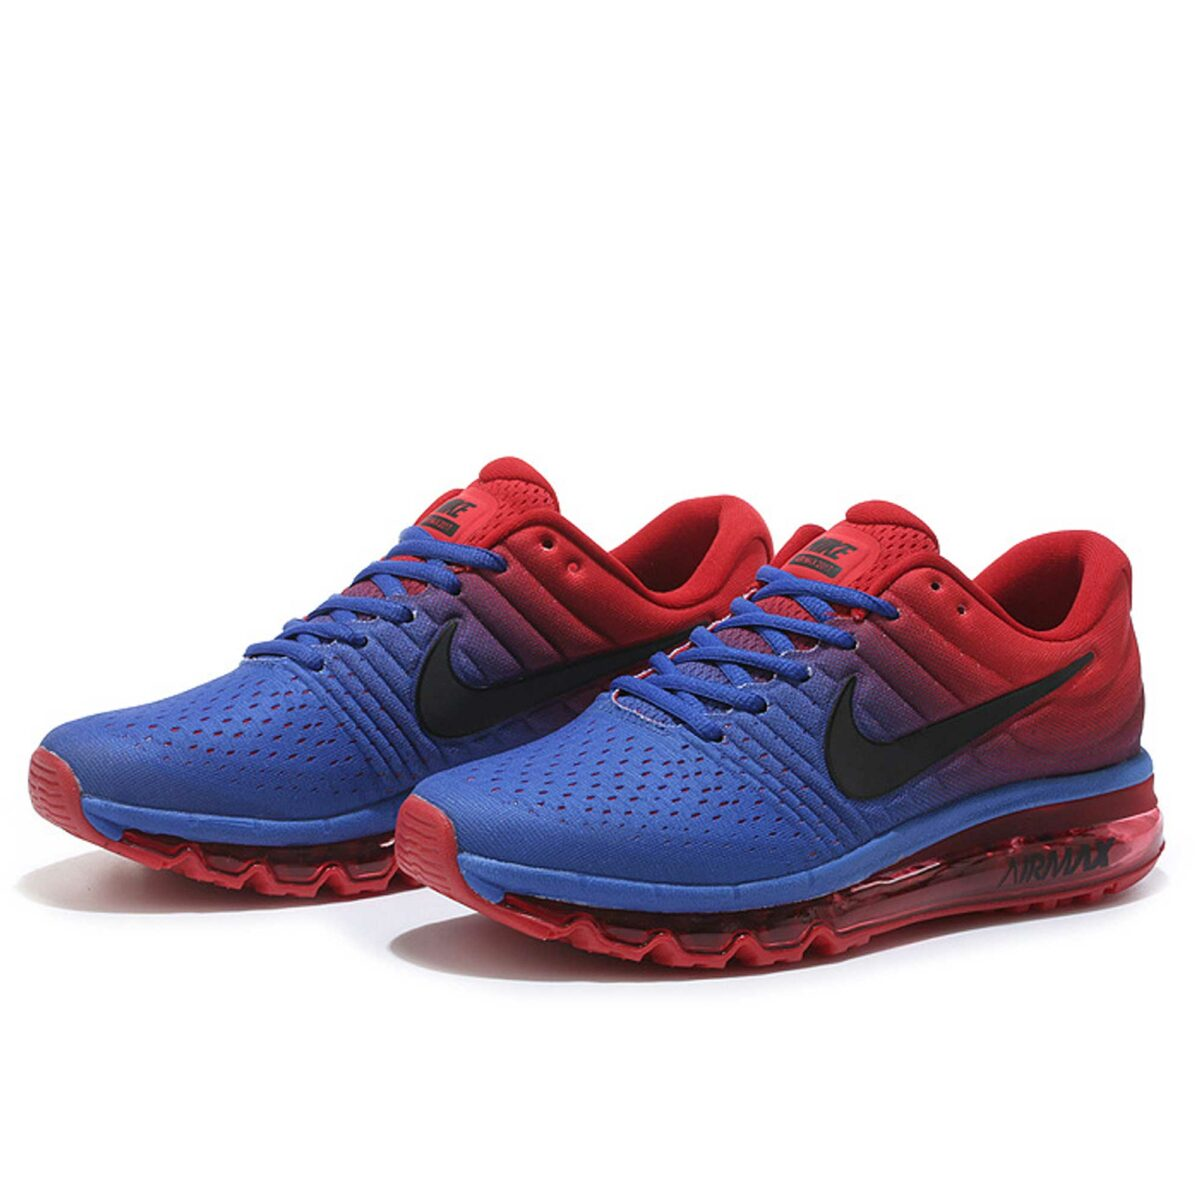 nike air max 2017 paramount blue orange 849559-402 купить